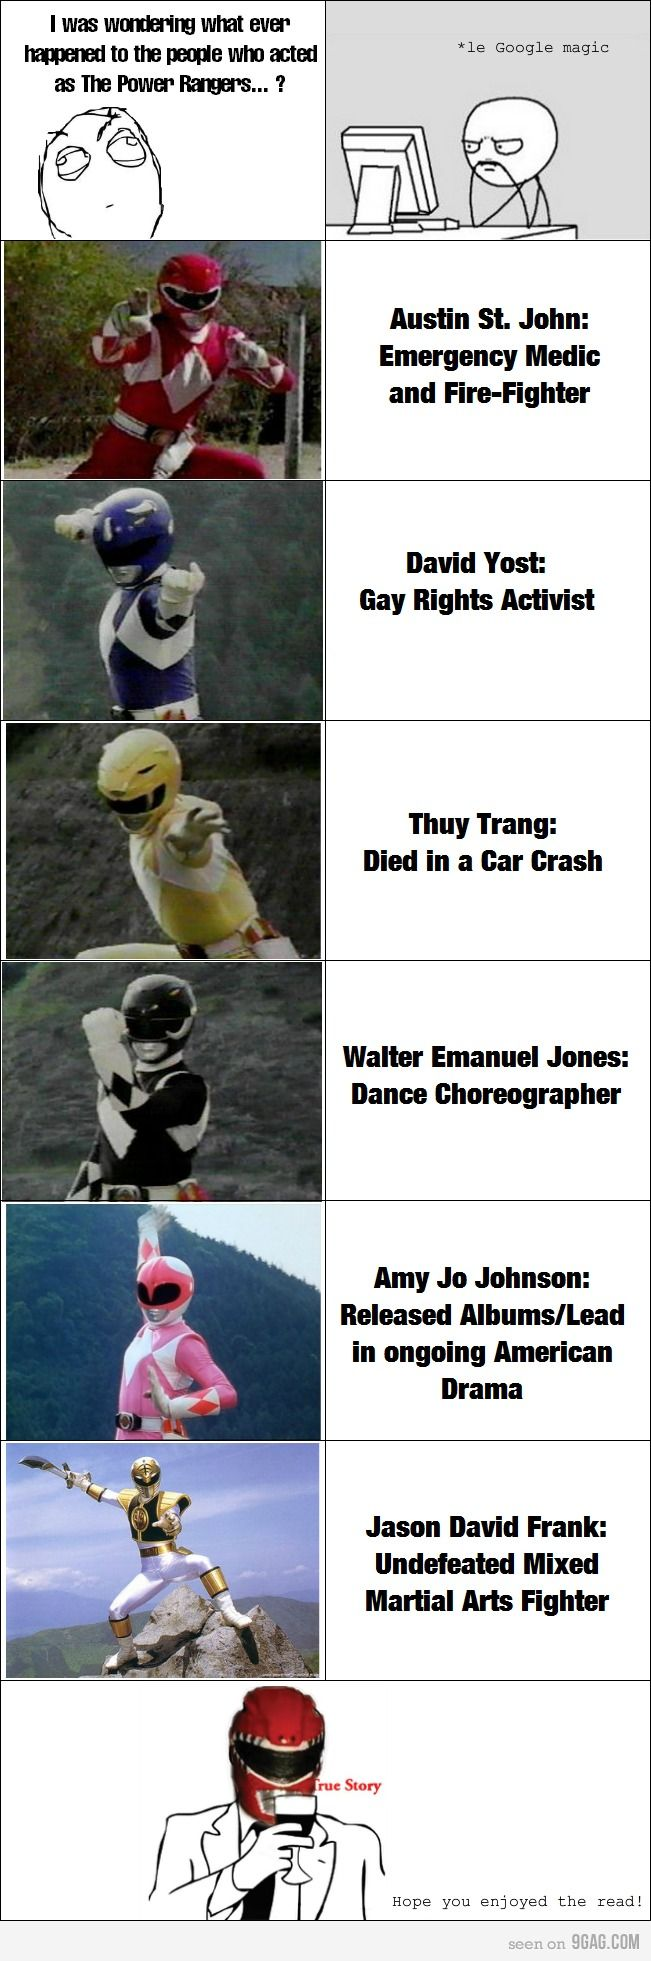 The Power Rangers. poor yellow ranger :( The Black one is still acting though as well.